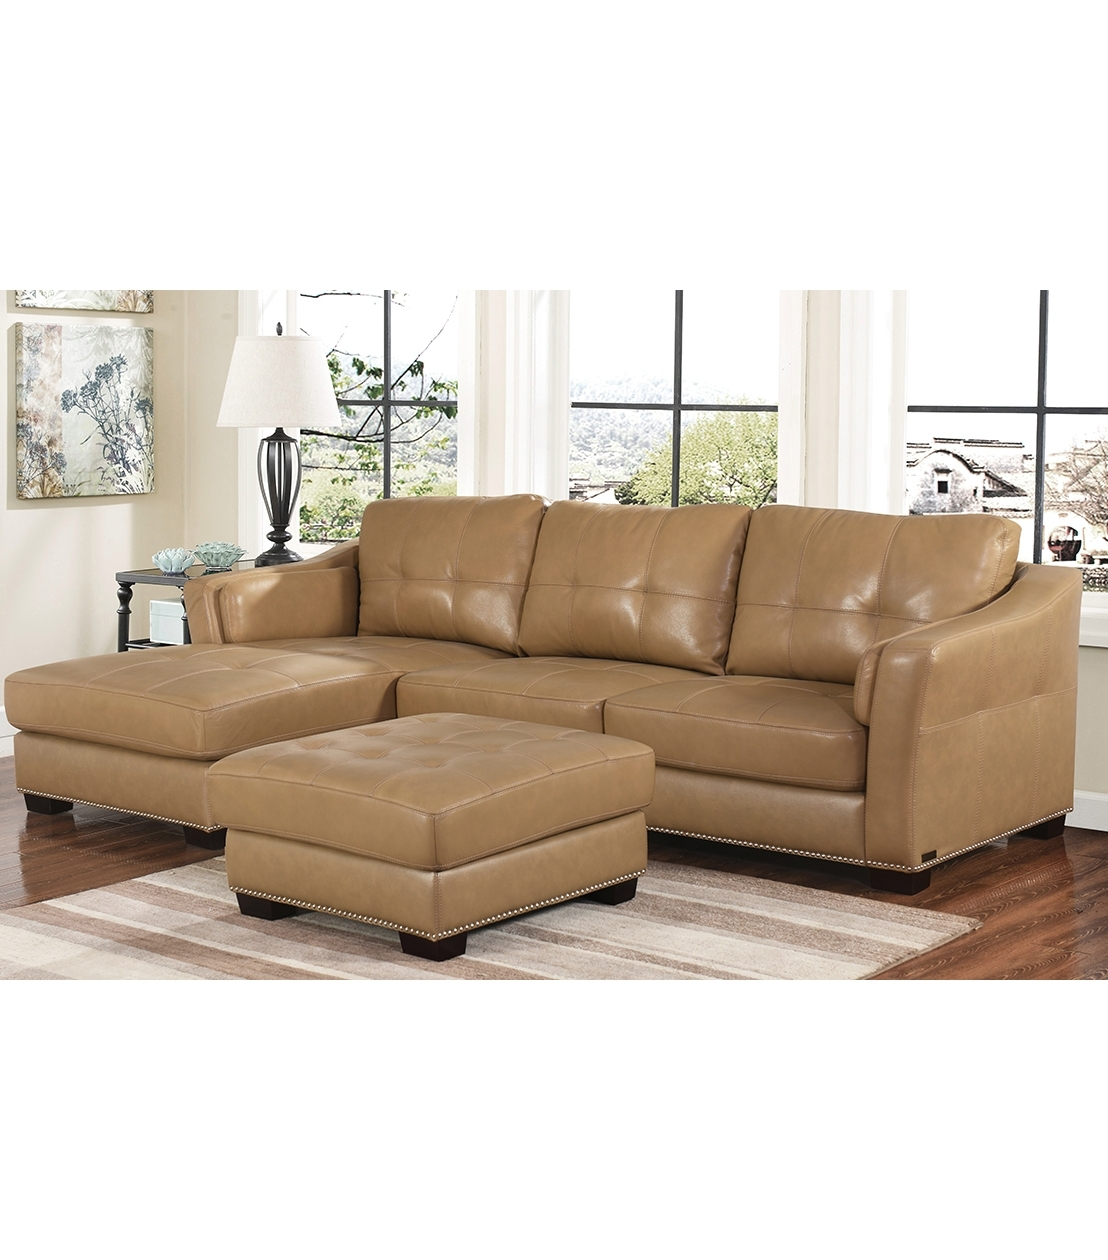 Abbyson Sectional Sofas Inside Widely Used Sectionals : Chelsie Leather Sectional (View 6 of 15)